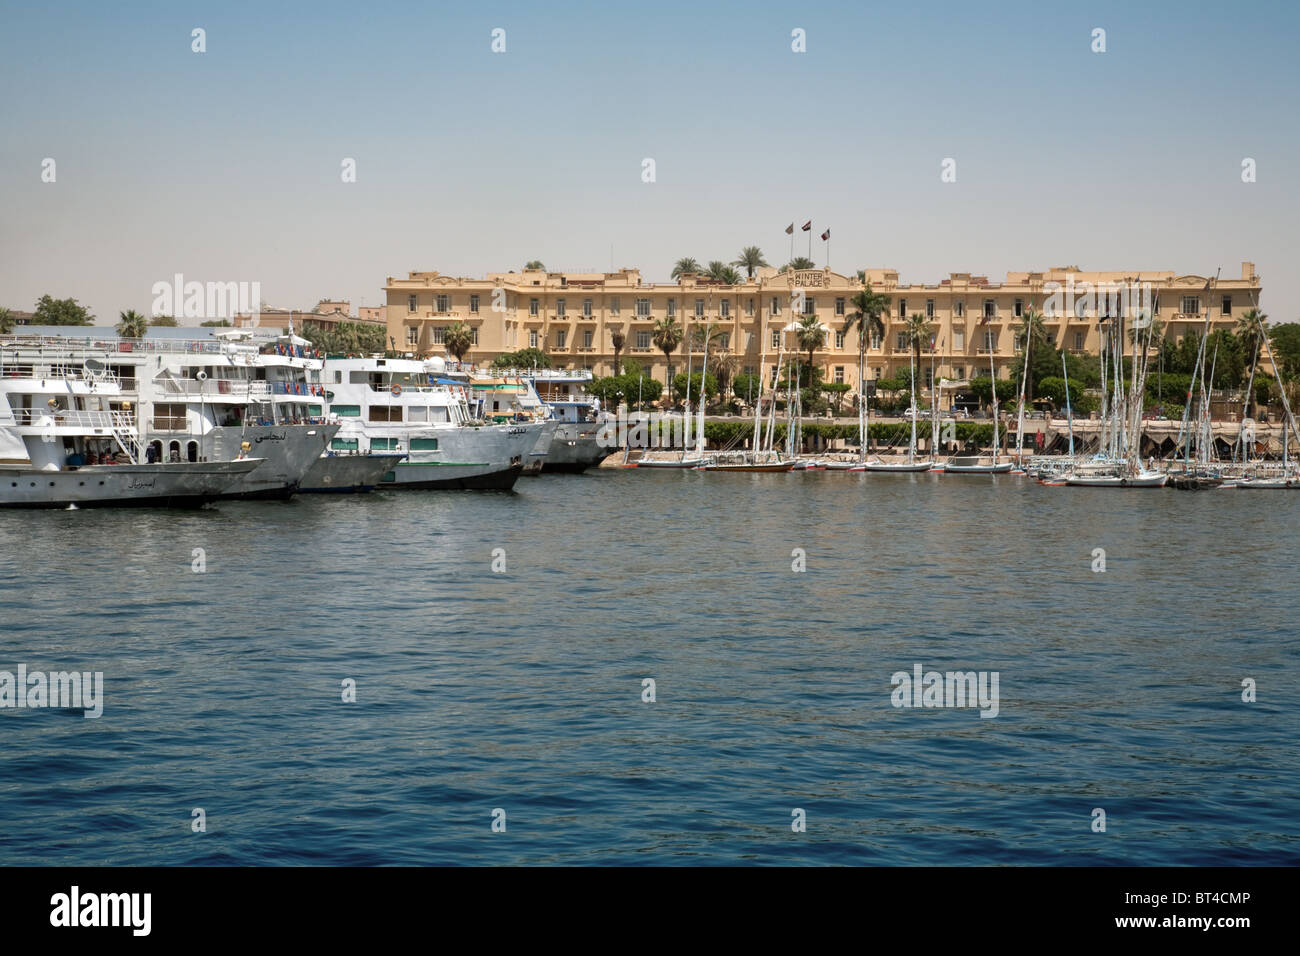 River Nile cruise ships moored at the Winter Palace Hotel, Luxor, Upper Egypt, Africa - Stock Image